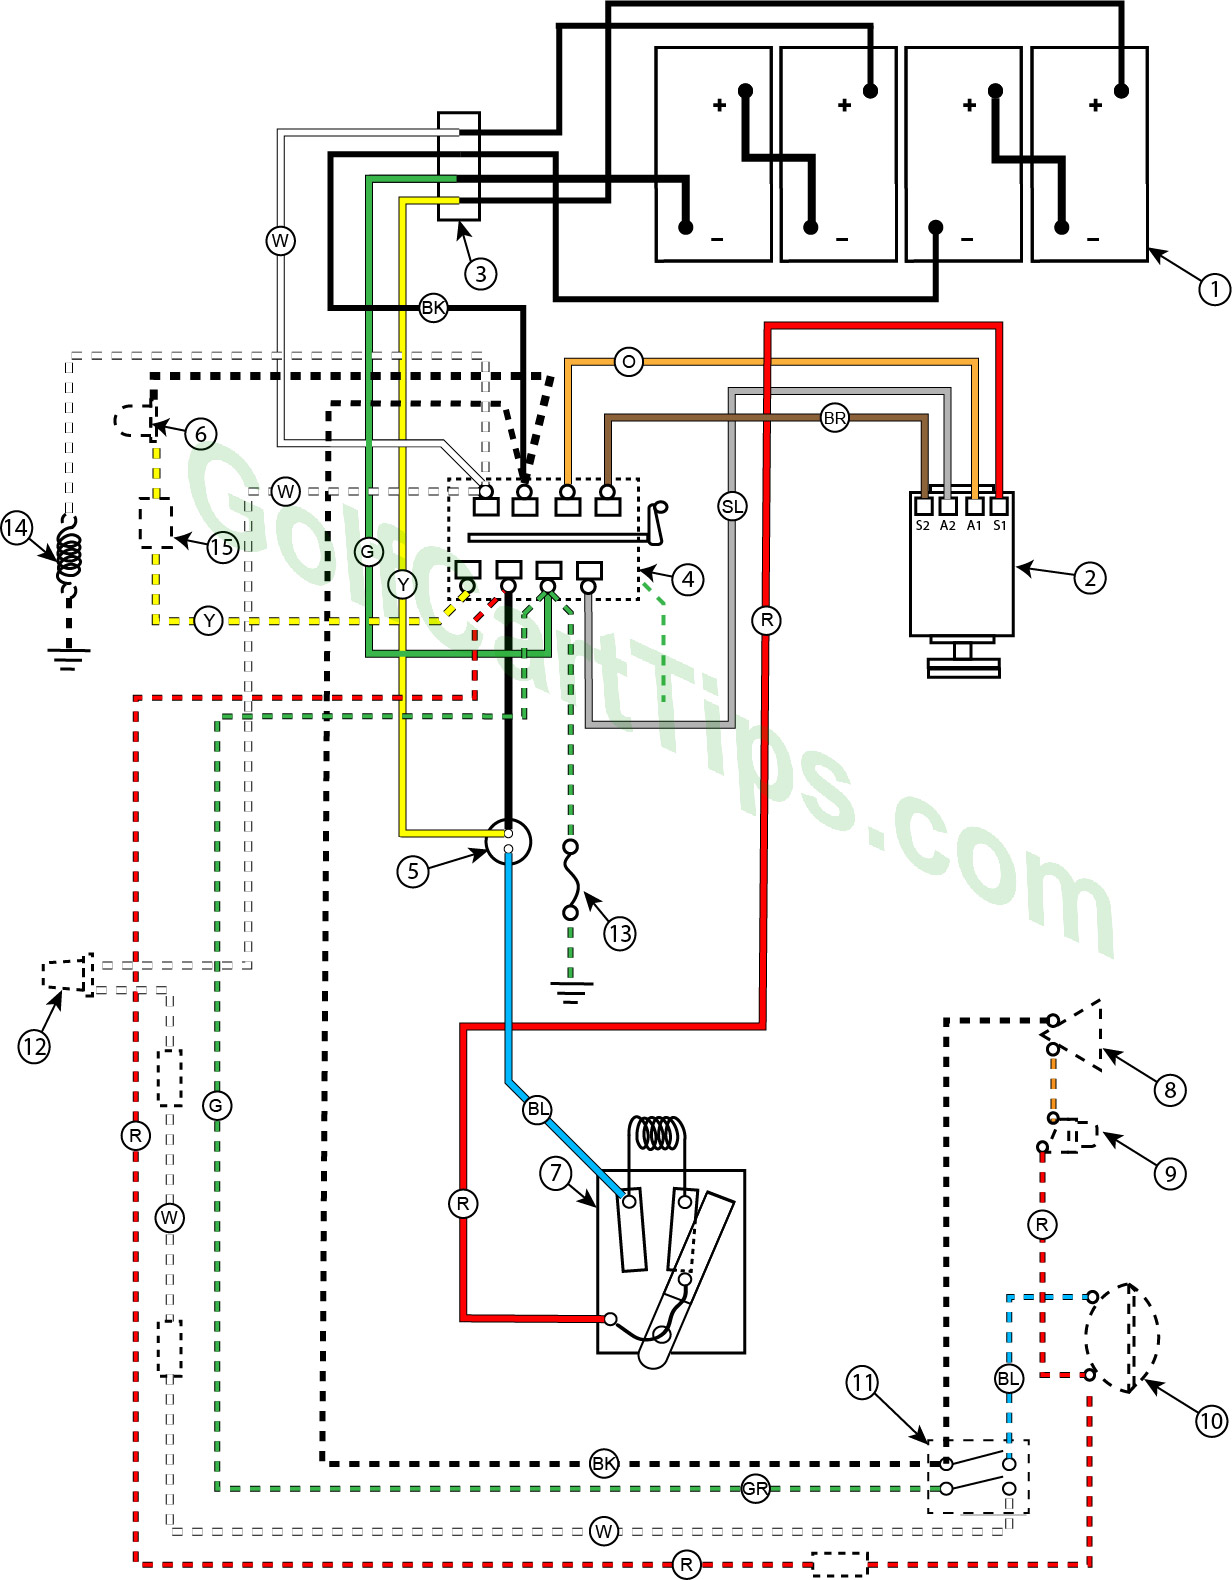 hight resolution of wiring diagram for 1955 model 732 12 golfster and 731 11 industrial 24 volt